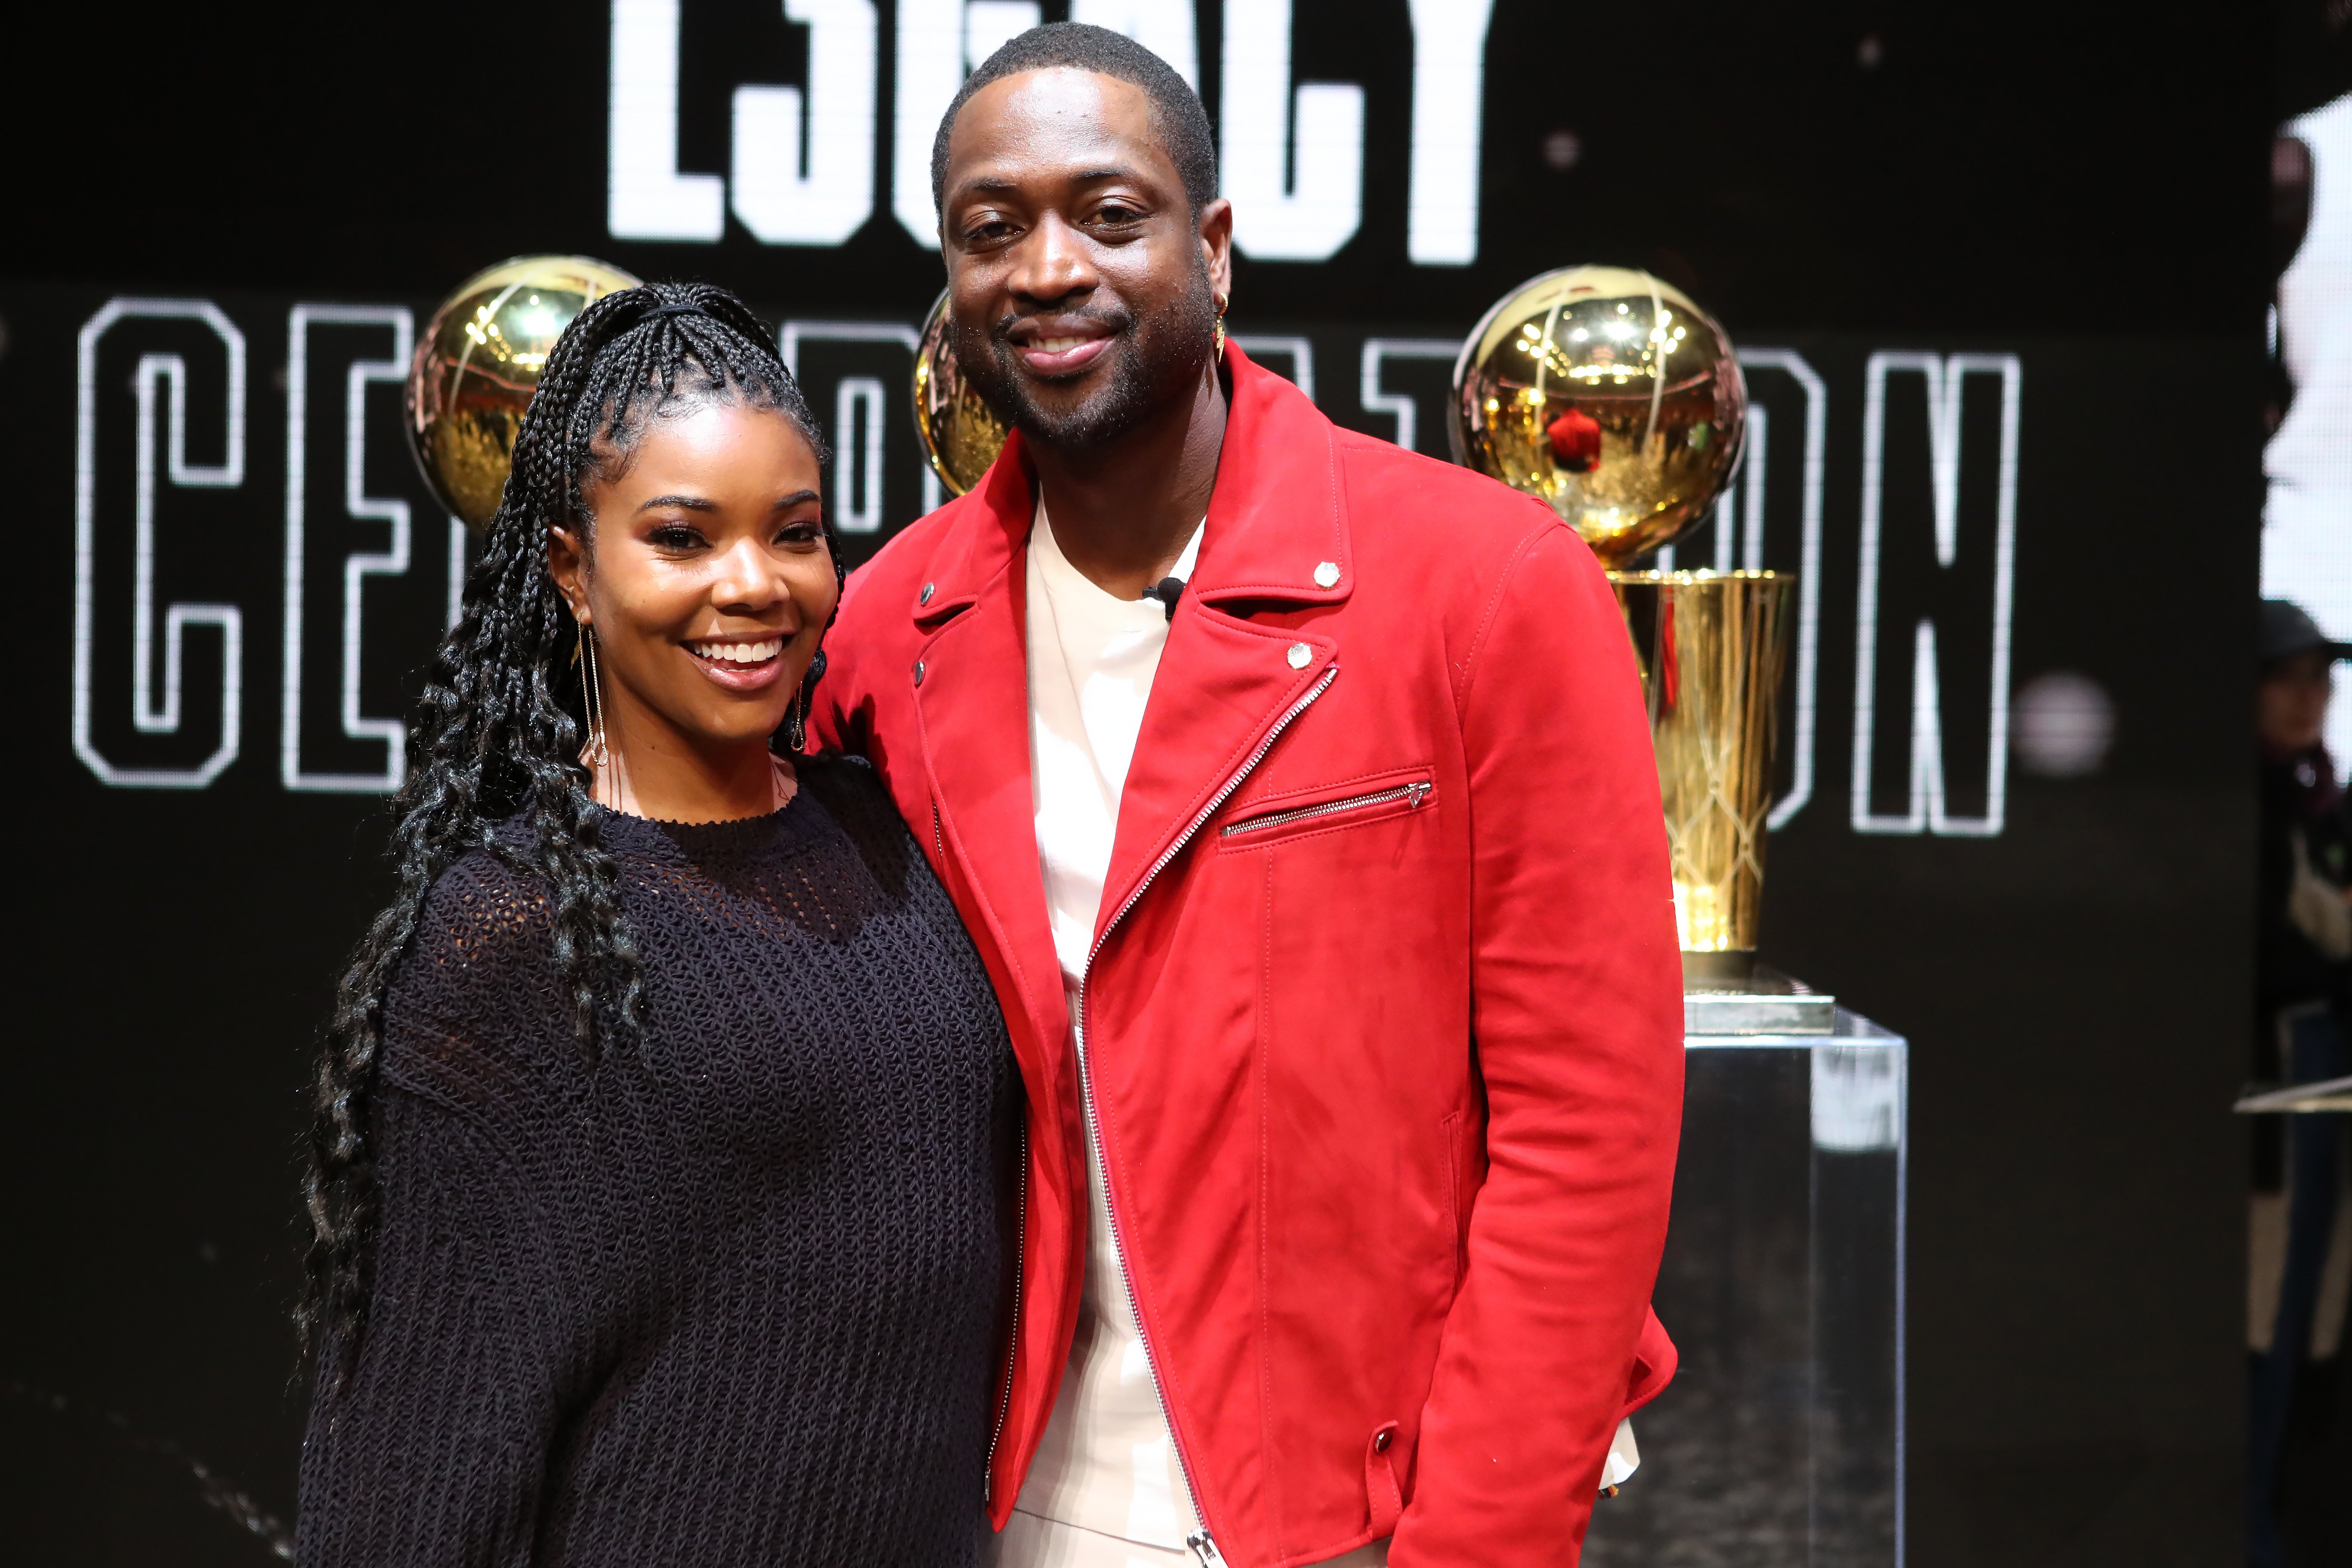 Dwyane Wade and Gabrielle Union attend the Jersey Retirement Flashback Event on February 21, 2020, in Miami, Florida. | Source: Getty Images.